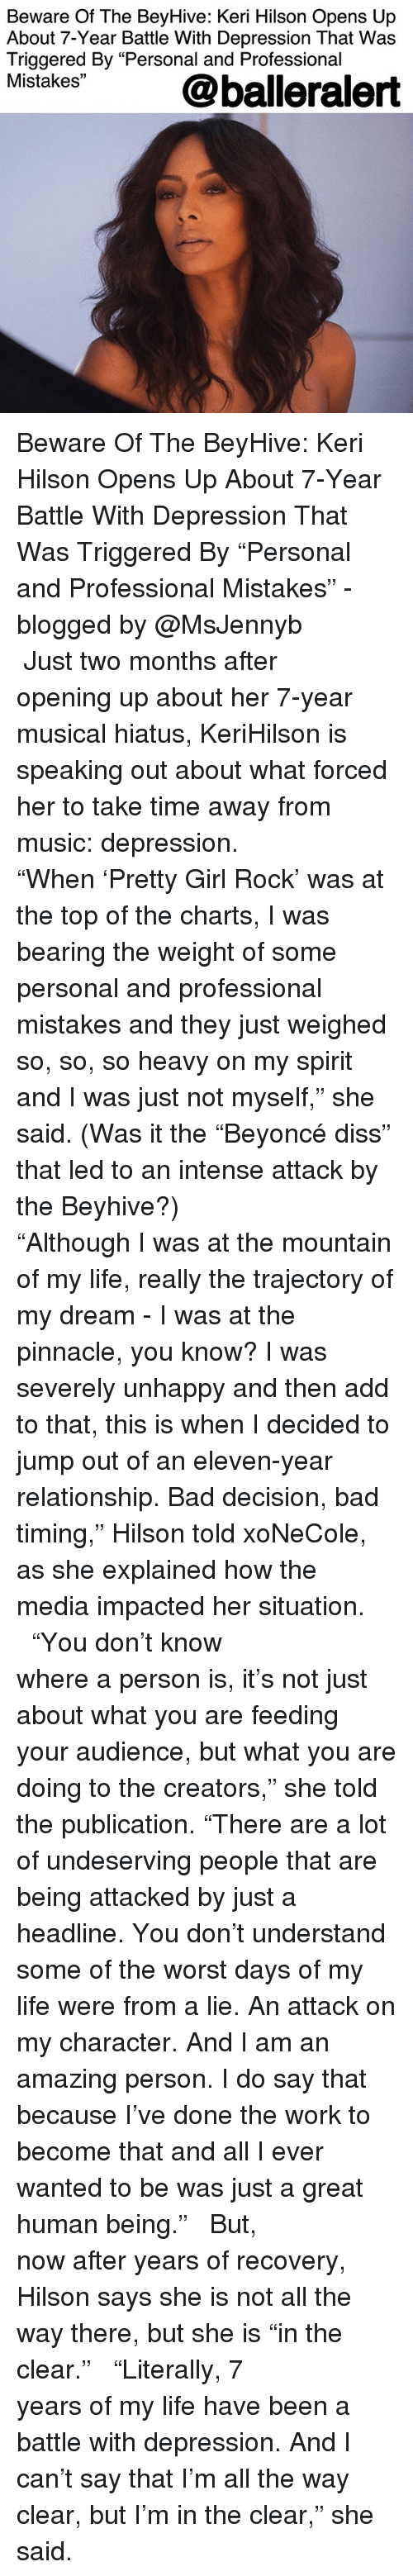 """Bad, Diss, and Life: Beware Of The BeyHive: Keri Hilson Opens Up  About 7-Year Battle With Depression That Was  Triggered By """"Personal and Professional  Mistakes""""  @balleralert Beware Of The BeyHive: Keri Hilson Opens Up About 7-Year Battle With Depression That Was Triggered By """"Personal and Professional Mistakes"""" - blogged by @MsJennyb ⠀⠀⠀⠀⠀⠀⠀⠀⠀ ⠀⠀⠀⠀⠀⠀⠀⠀⠀ Just two months after opening up about her 7-year musical hiatus, KeriHilson is speaking out about what forced her to take time away from music: depression. ⠀⠀⠀⠀⠀⠀⠀⠀⠀ """"When 'Pretty Girl Rock' was at the top of the charts, I was bearing the weight of some personal and professional mistakes and they just weighed so, so, so heavy on my spirit and I was just not myself,"""" she said. (Was it the """"Beyoncé diss"""" that led to an intense attack by the Beyhive?) ⠀⠀⠀⠀⠀⠀⠀⠀⠀ ⠀⠀⠀⠀⠀⠀⠀⠀⠀ """"Although I was at the mountain of my life, really the trajectory of my dream - I was at the pinnacle, you know? I was severely unhappy and then add to that, this is when I decided to jump out of an eleven-year relationship. Bad decision, bad timing,"""" Hilson told xoNeCole, as she explained how the media impacted her situation. ⠀⠀⠀⠀⠀⠀⠀⠀⠀ ⠀⠀⠀⠀⠀⠀⠀⠀⠀ """"You don't know where a person is, it's not just about what you are feeding your audience, but what you are doing to the creators,"""" she told the publication. """"There are a lot of undeserving people that are being attacked by just a headline. You don't understand some of the worst days of my life were from a lie. An attack on my character. And I am an amazing person. I do say that because I've done the work to become that and all I ever wanted to be was just a great human being."""" ⠀⠀⠀⠀⠀⠀⠀⠀⠀ ⠀⠀⠀⠀⠀⠀⠀⠀⠀ But, now after years of recovery, Hilson says she is not all the way there, but she is """"in the clear."""" ⠀⠀⠀⠀⠀⠀⠀⠀⠀ ⠀⠀⠀⠀⠀⠀⠀⠀⠀ """"Literally, 7 years of my life have been a battle with depression. And I can't say that I'm all the way clear, but I'm in the clear,"""" she said."""